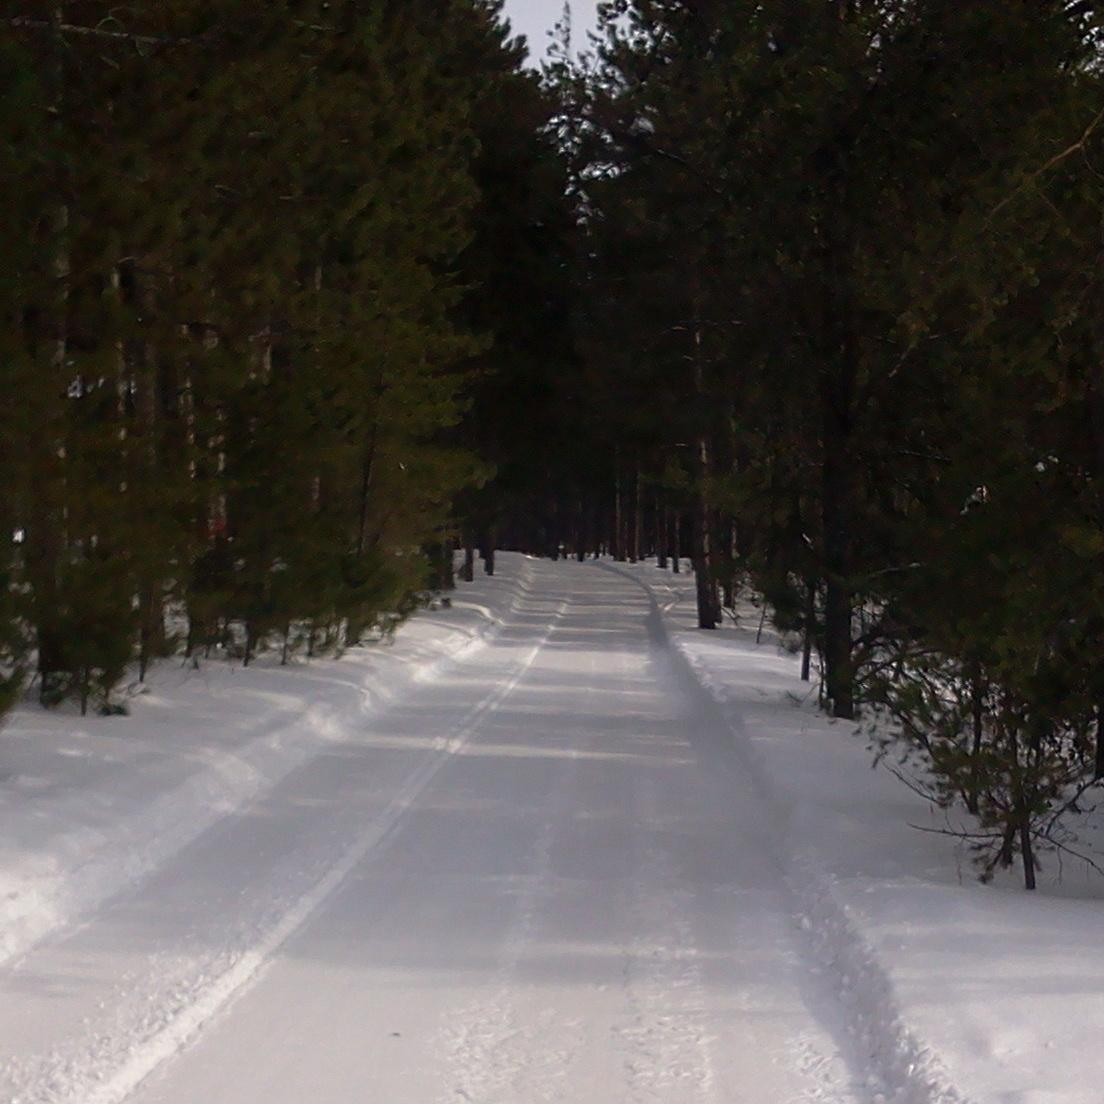 Groomed woods trail